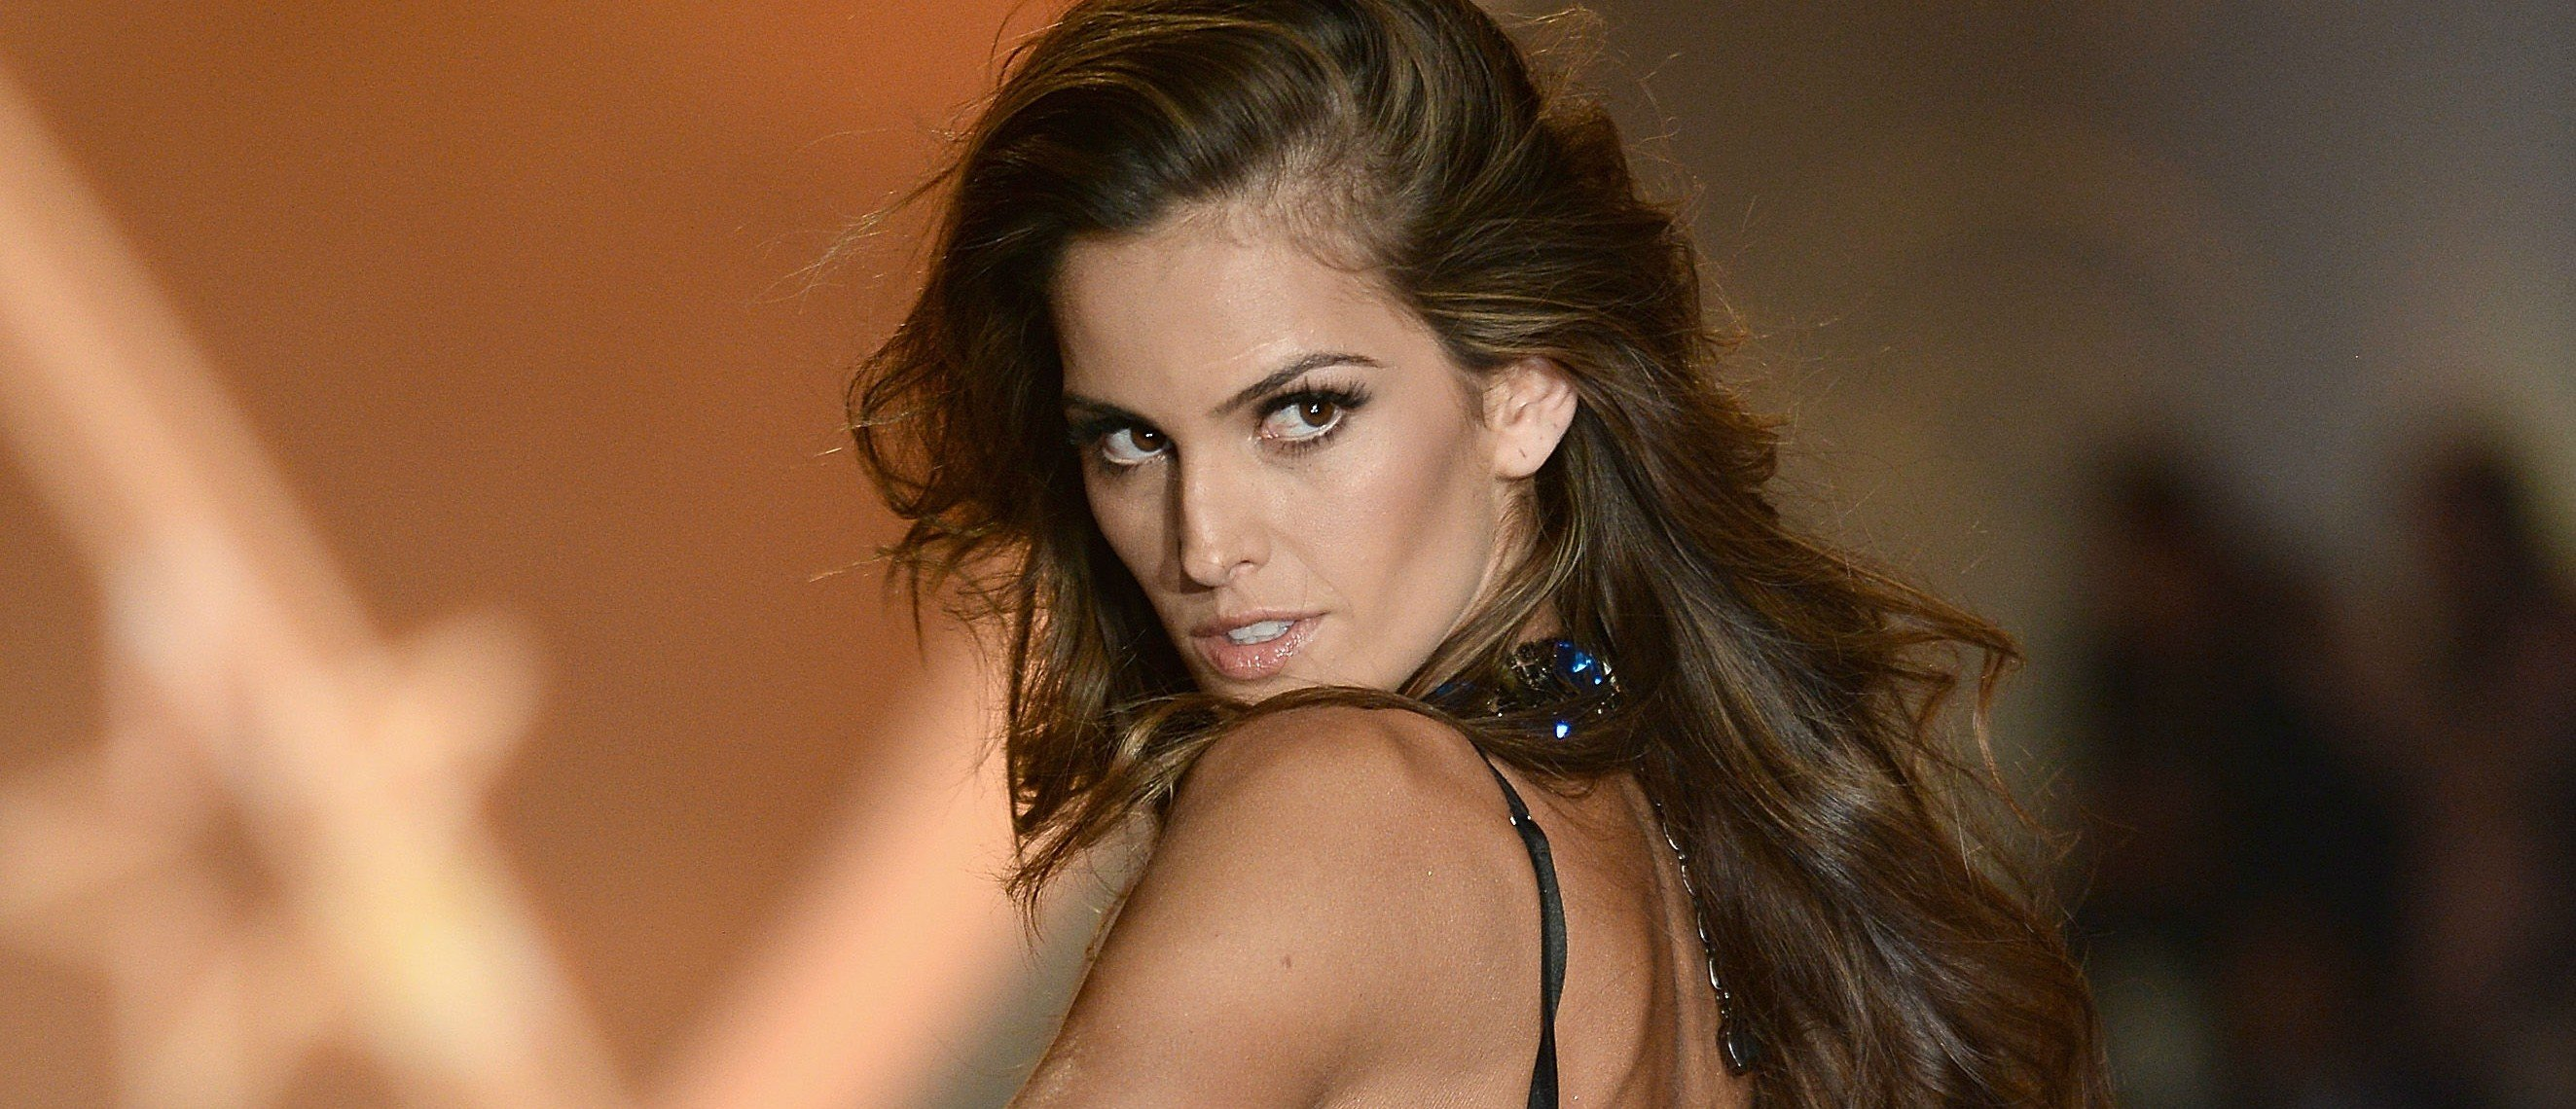 Alessandra Ambrosio. (Photo: Getty Images)